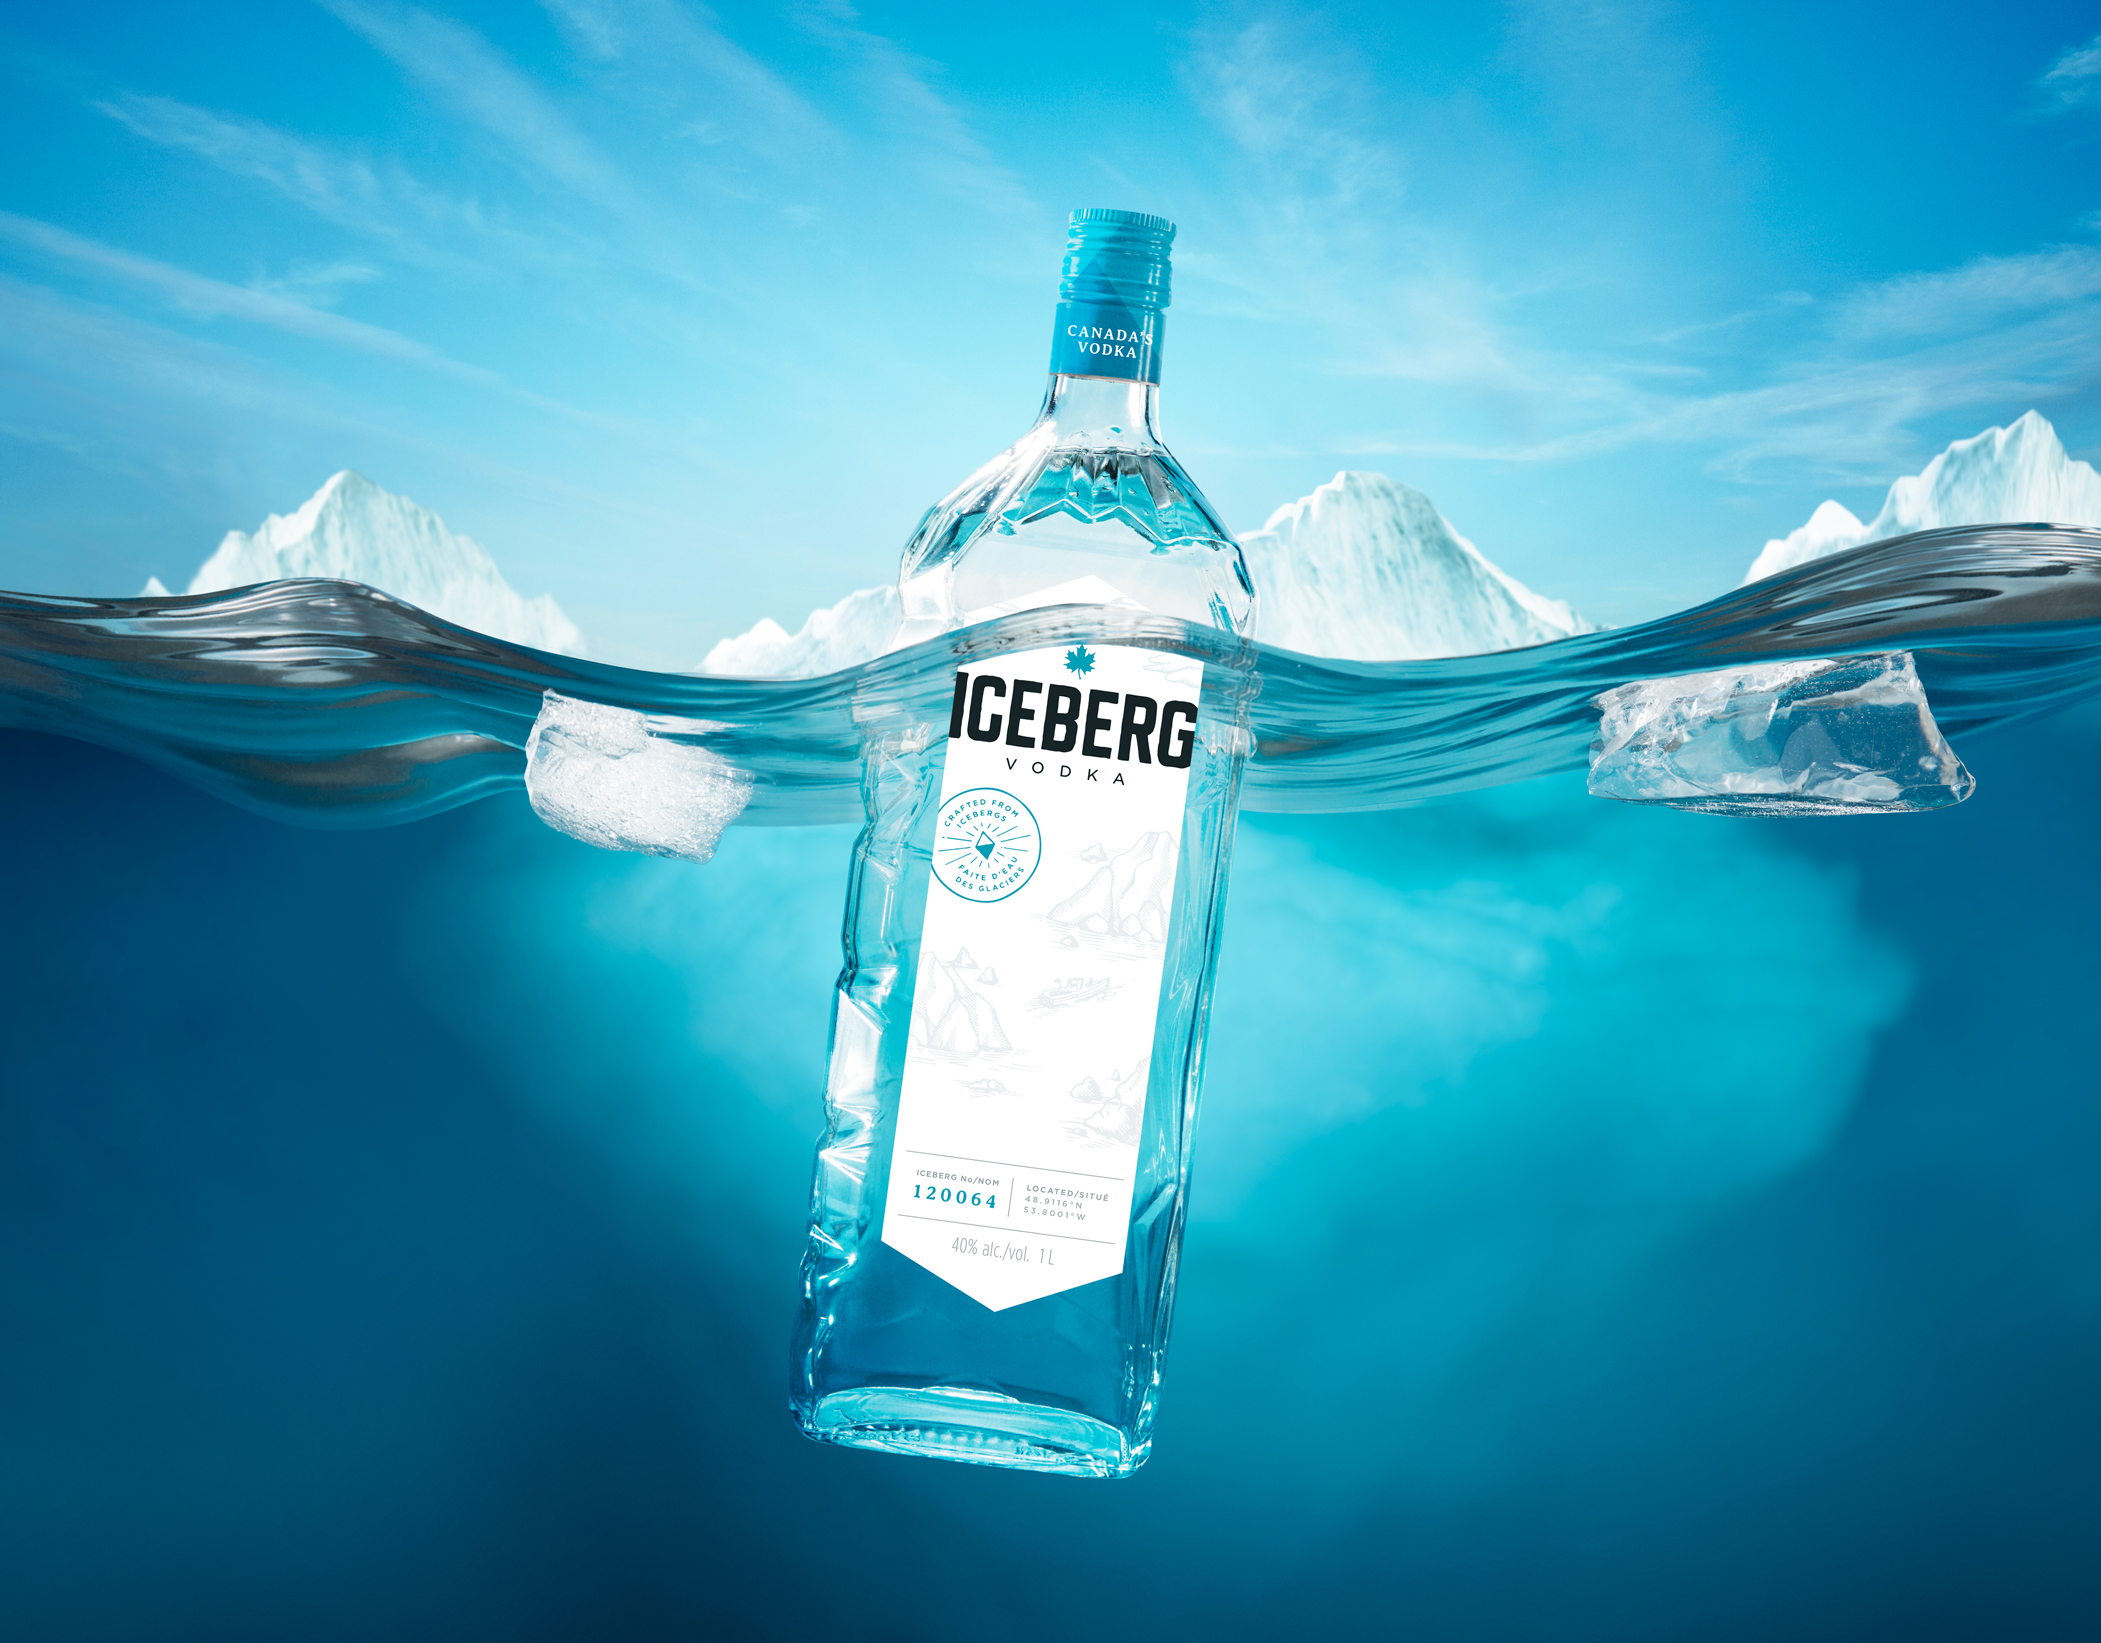 100% authentic 0dca0 8fa68 Iceberg Vodka gets a new look » strategy